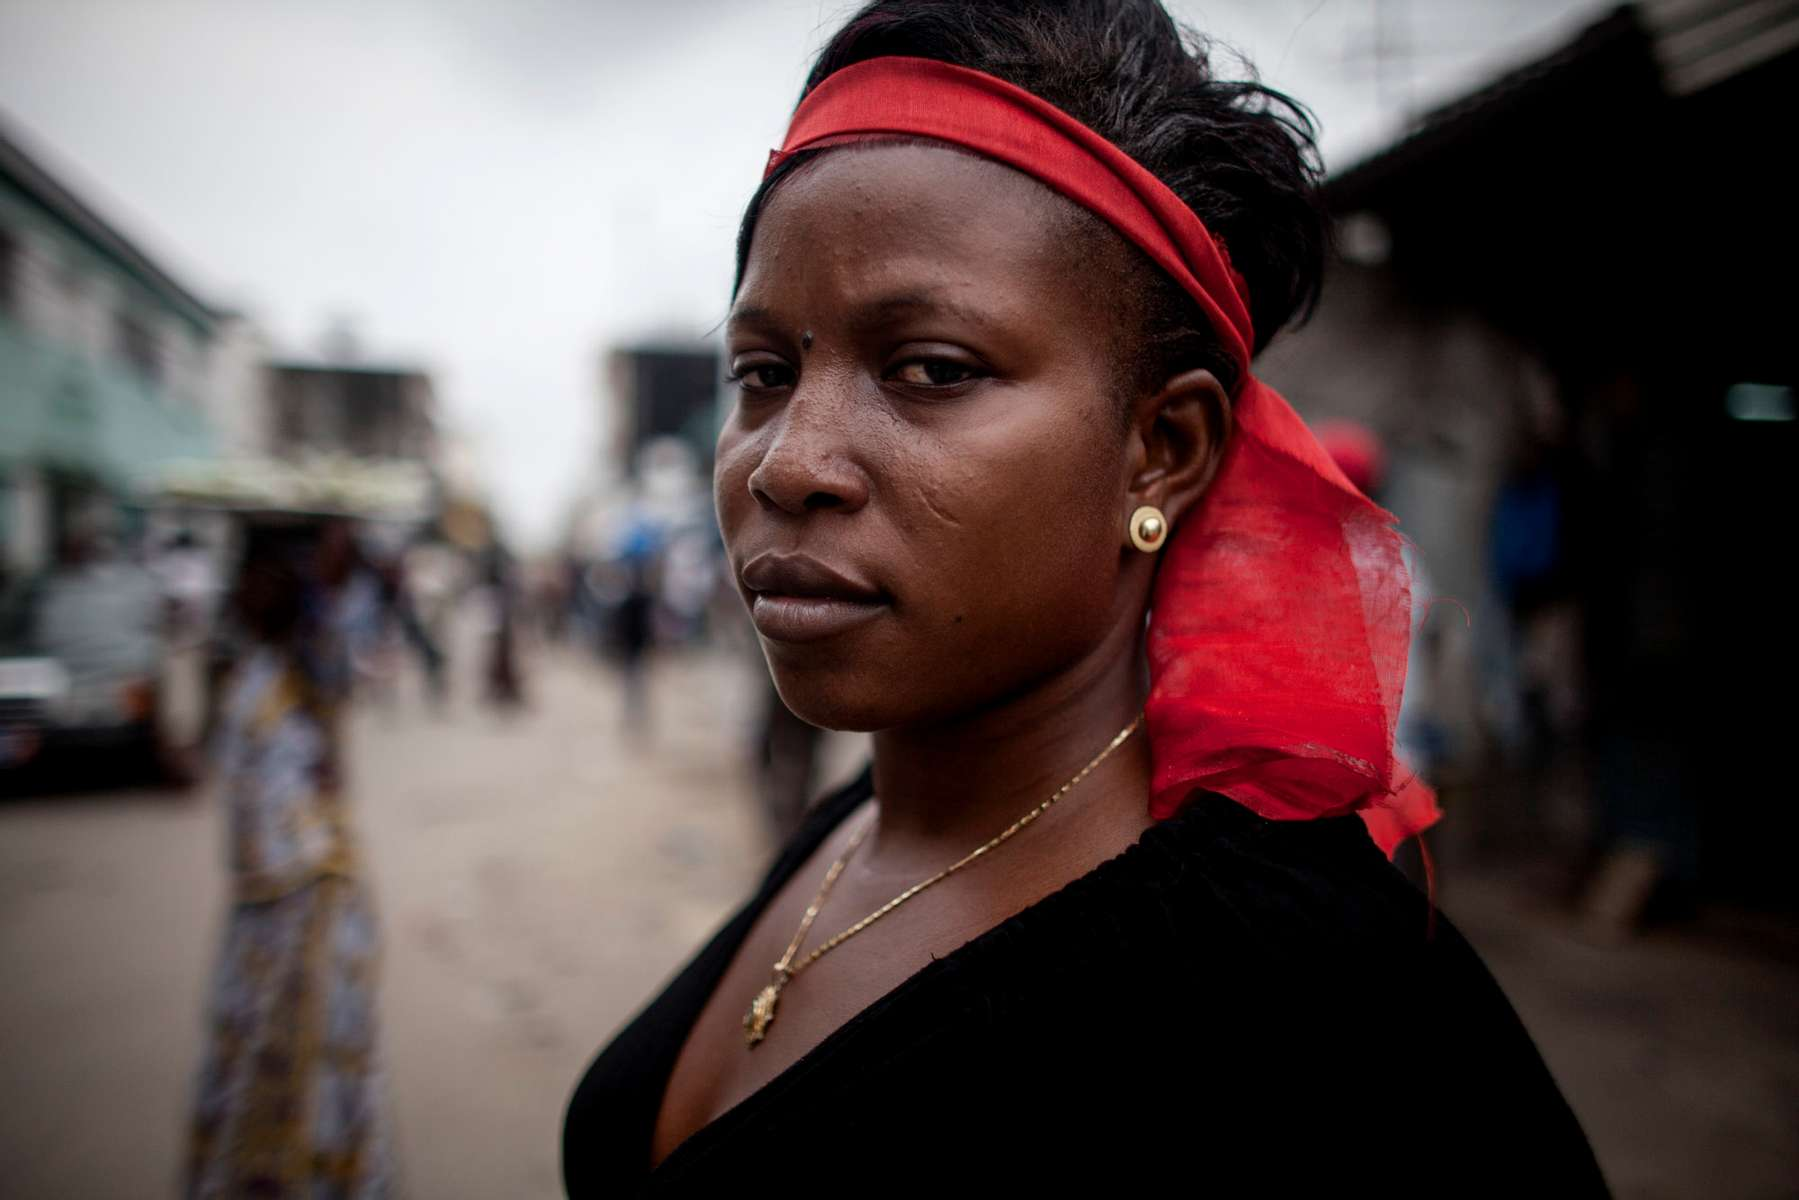 Abiba Ouattara, 25, waits for the start of the march mourning the deaths of the victims of the political violence on Tuesday, March 8, 2011 in Treichville, Ivory Coast. This afternoon in Treichville, after finishing prayers (both Christian and Muslim) the marching women encountered the {quote}Compagnies Republicaines de SecuritÈ{quote} (CRS), special riot police loyal to Laurent Gbagbo. Its reported that the neighborhood youth guard stood in a line between the women and the CRS to protect the women when the CRS opened fire. At least four were killed including one woman and unknown number were injured.